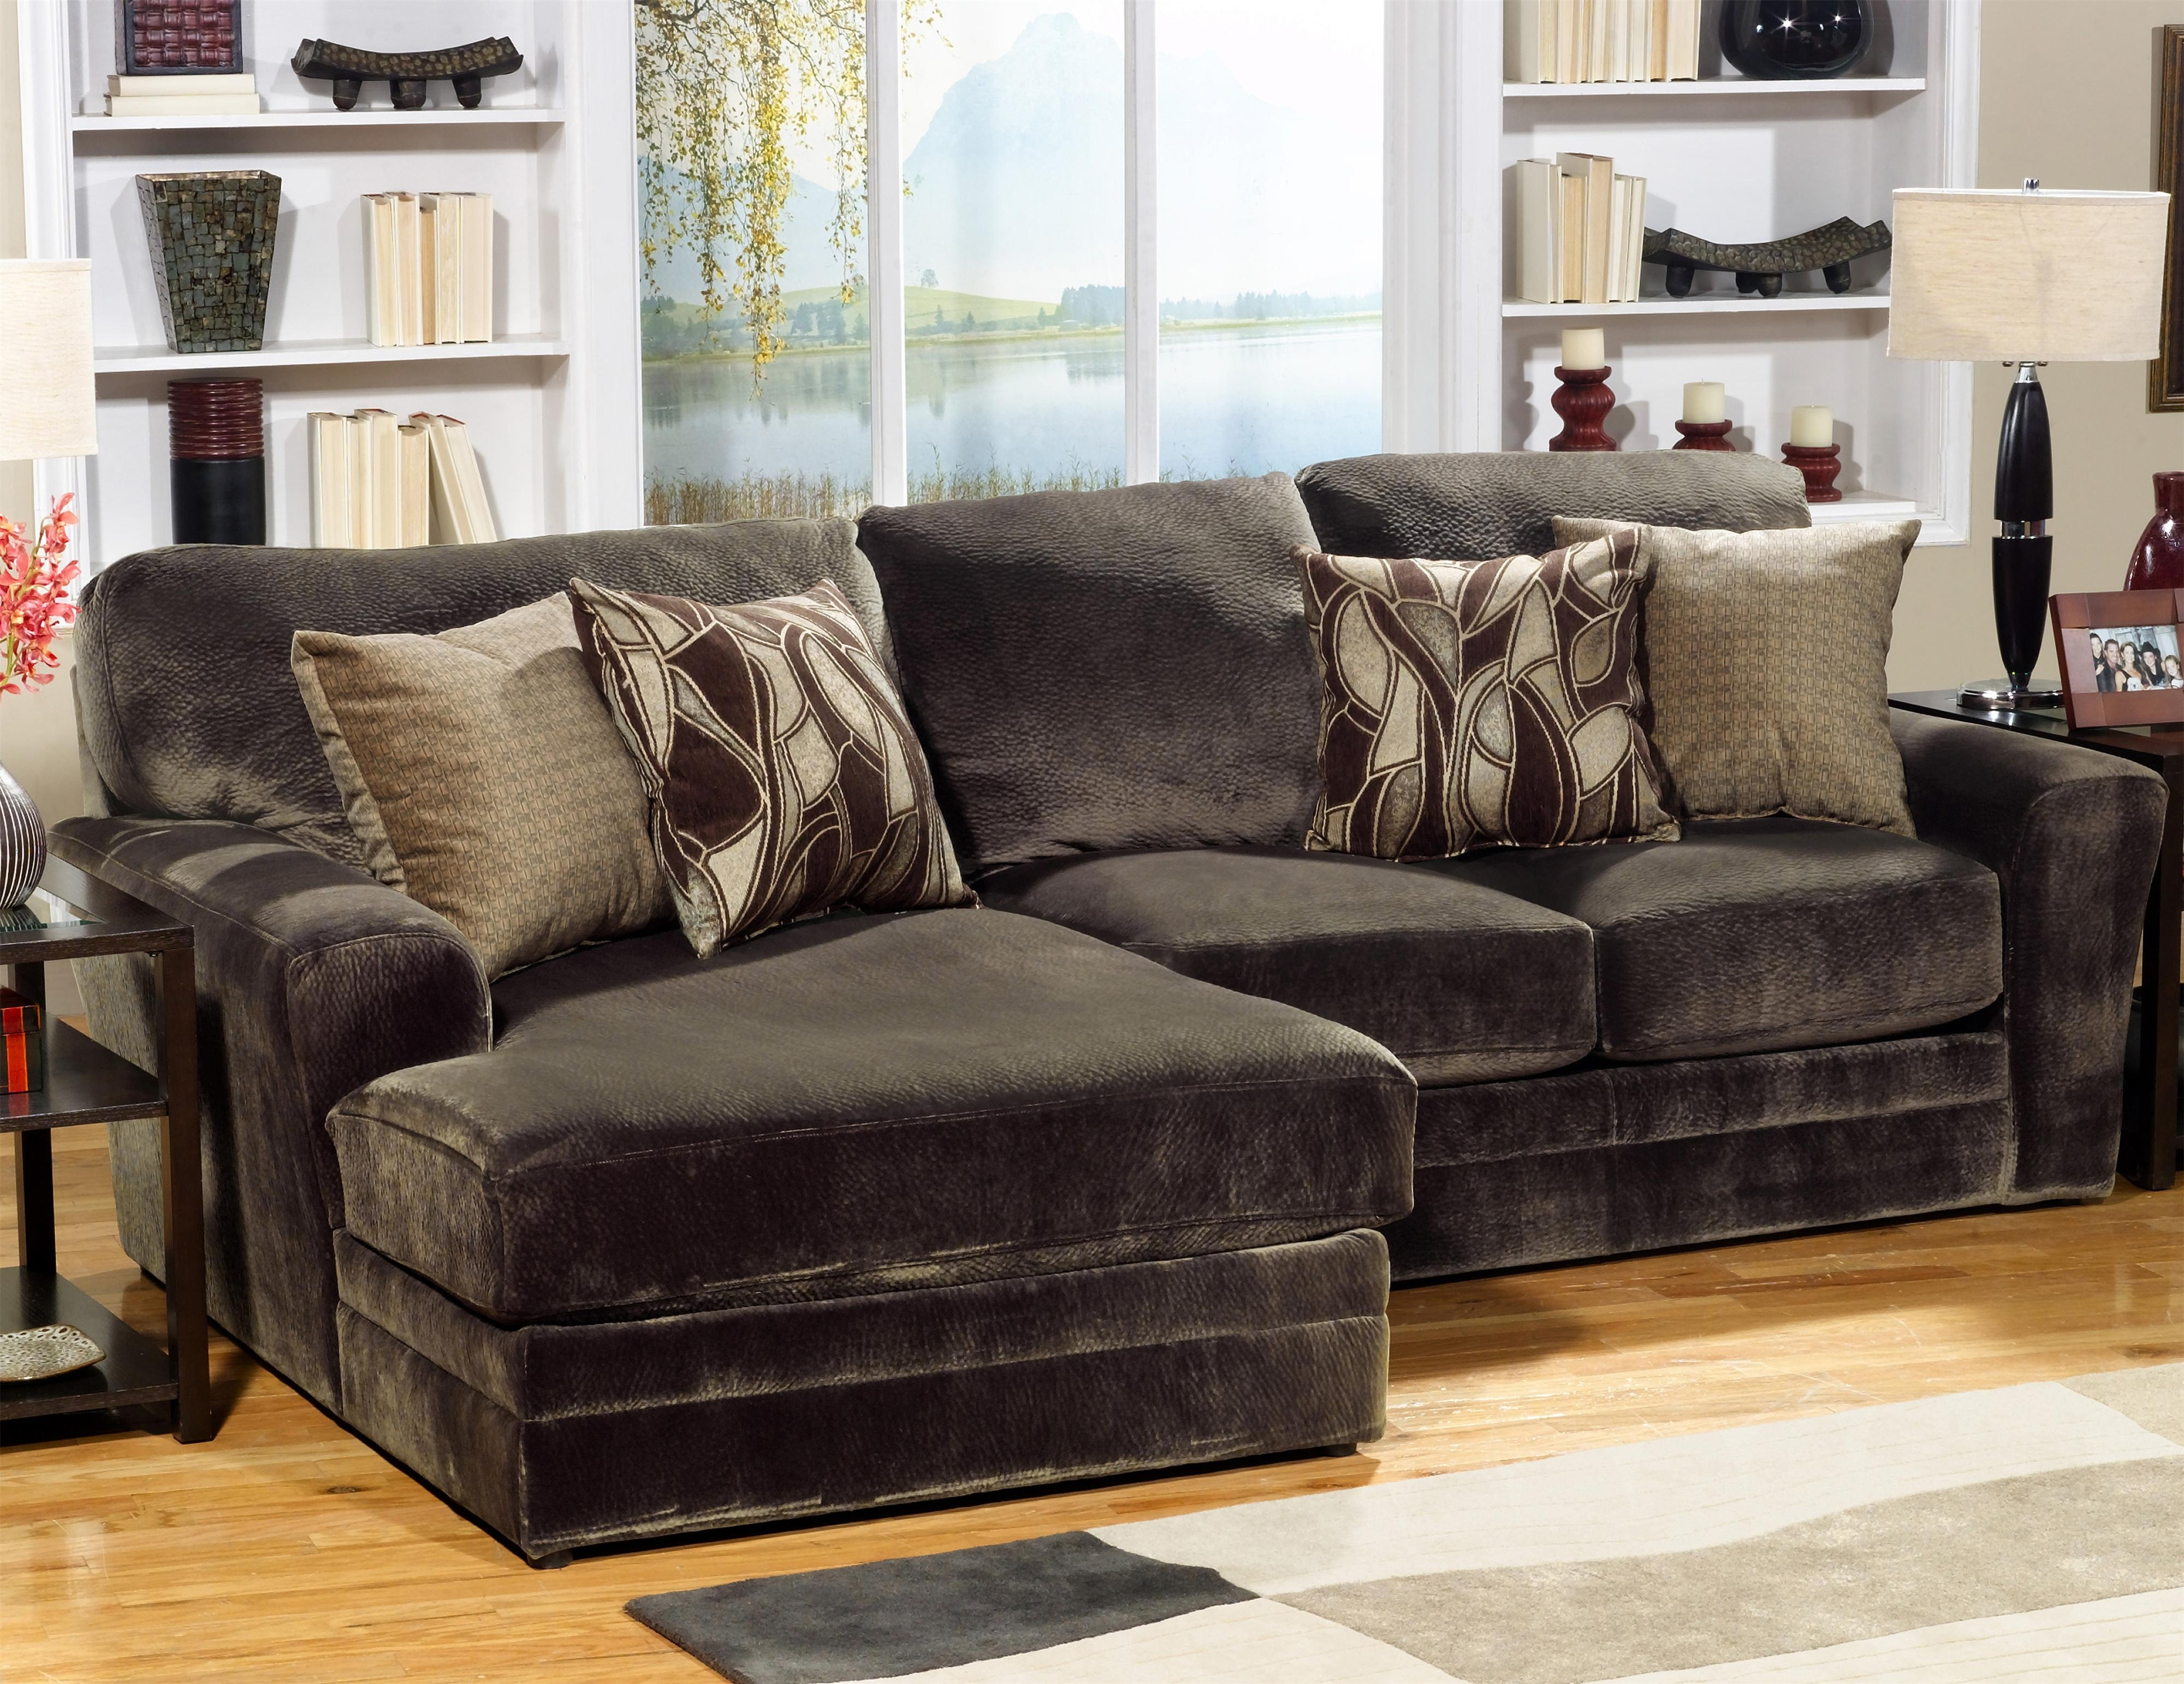 Jackson Furniture 4377 Everest 2 Piece Sectional Sofa With Lsf with Burton Leather 3 Piece Sectionals With Ottoman (Image 10 of 30)